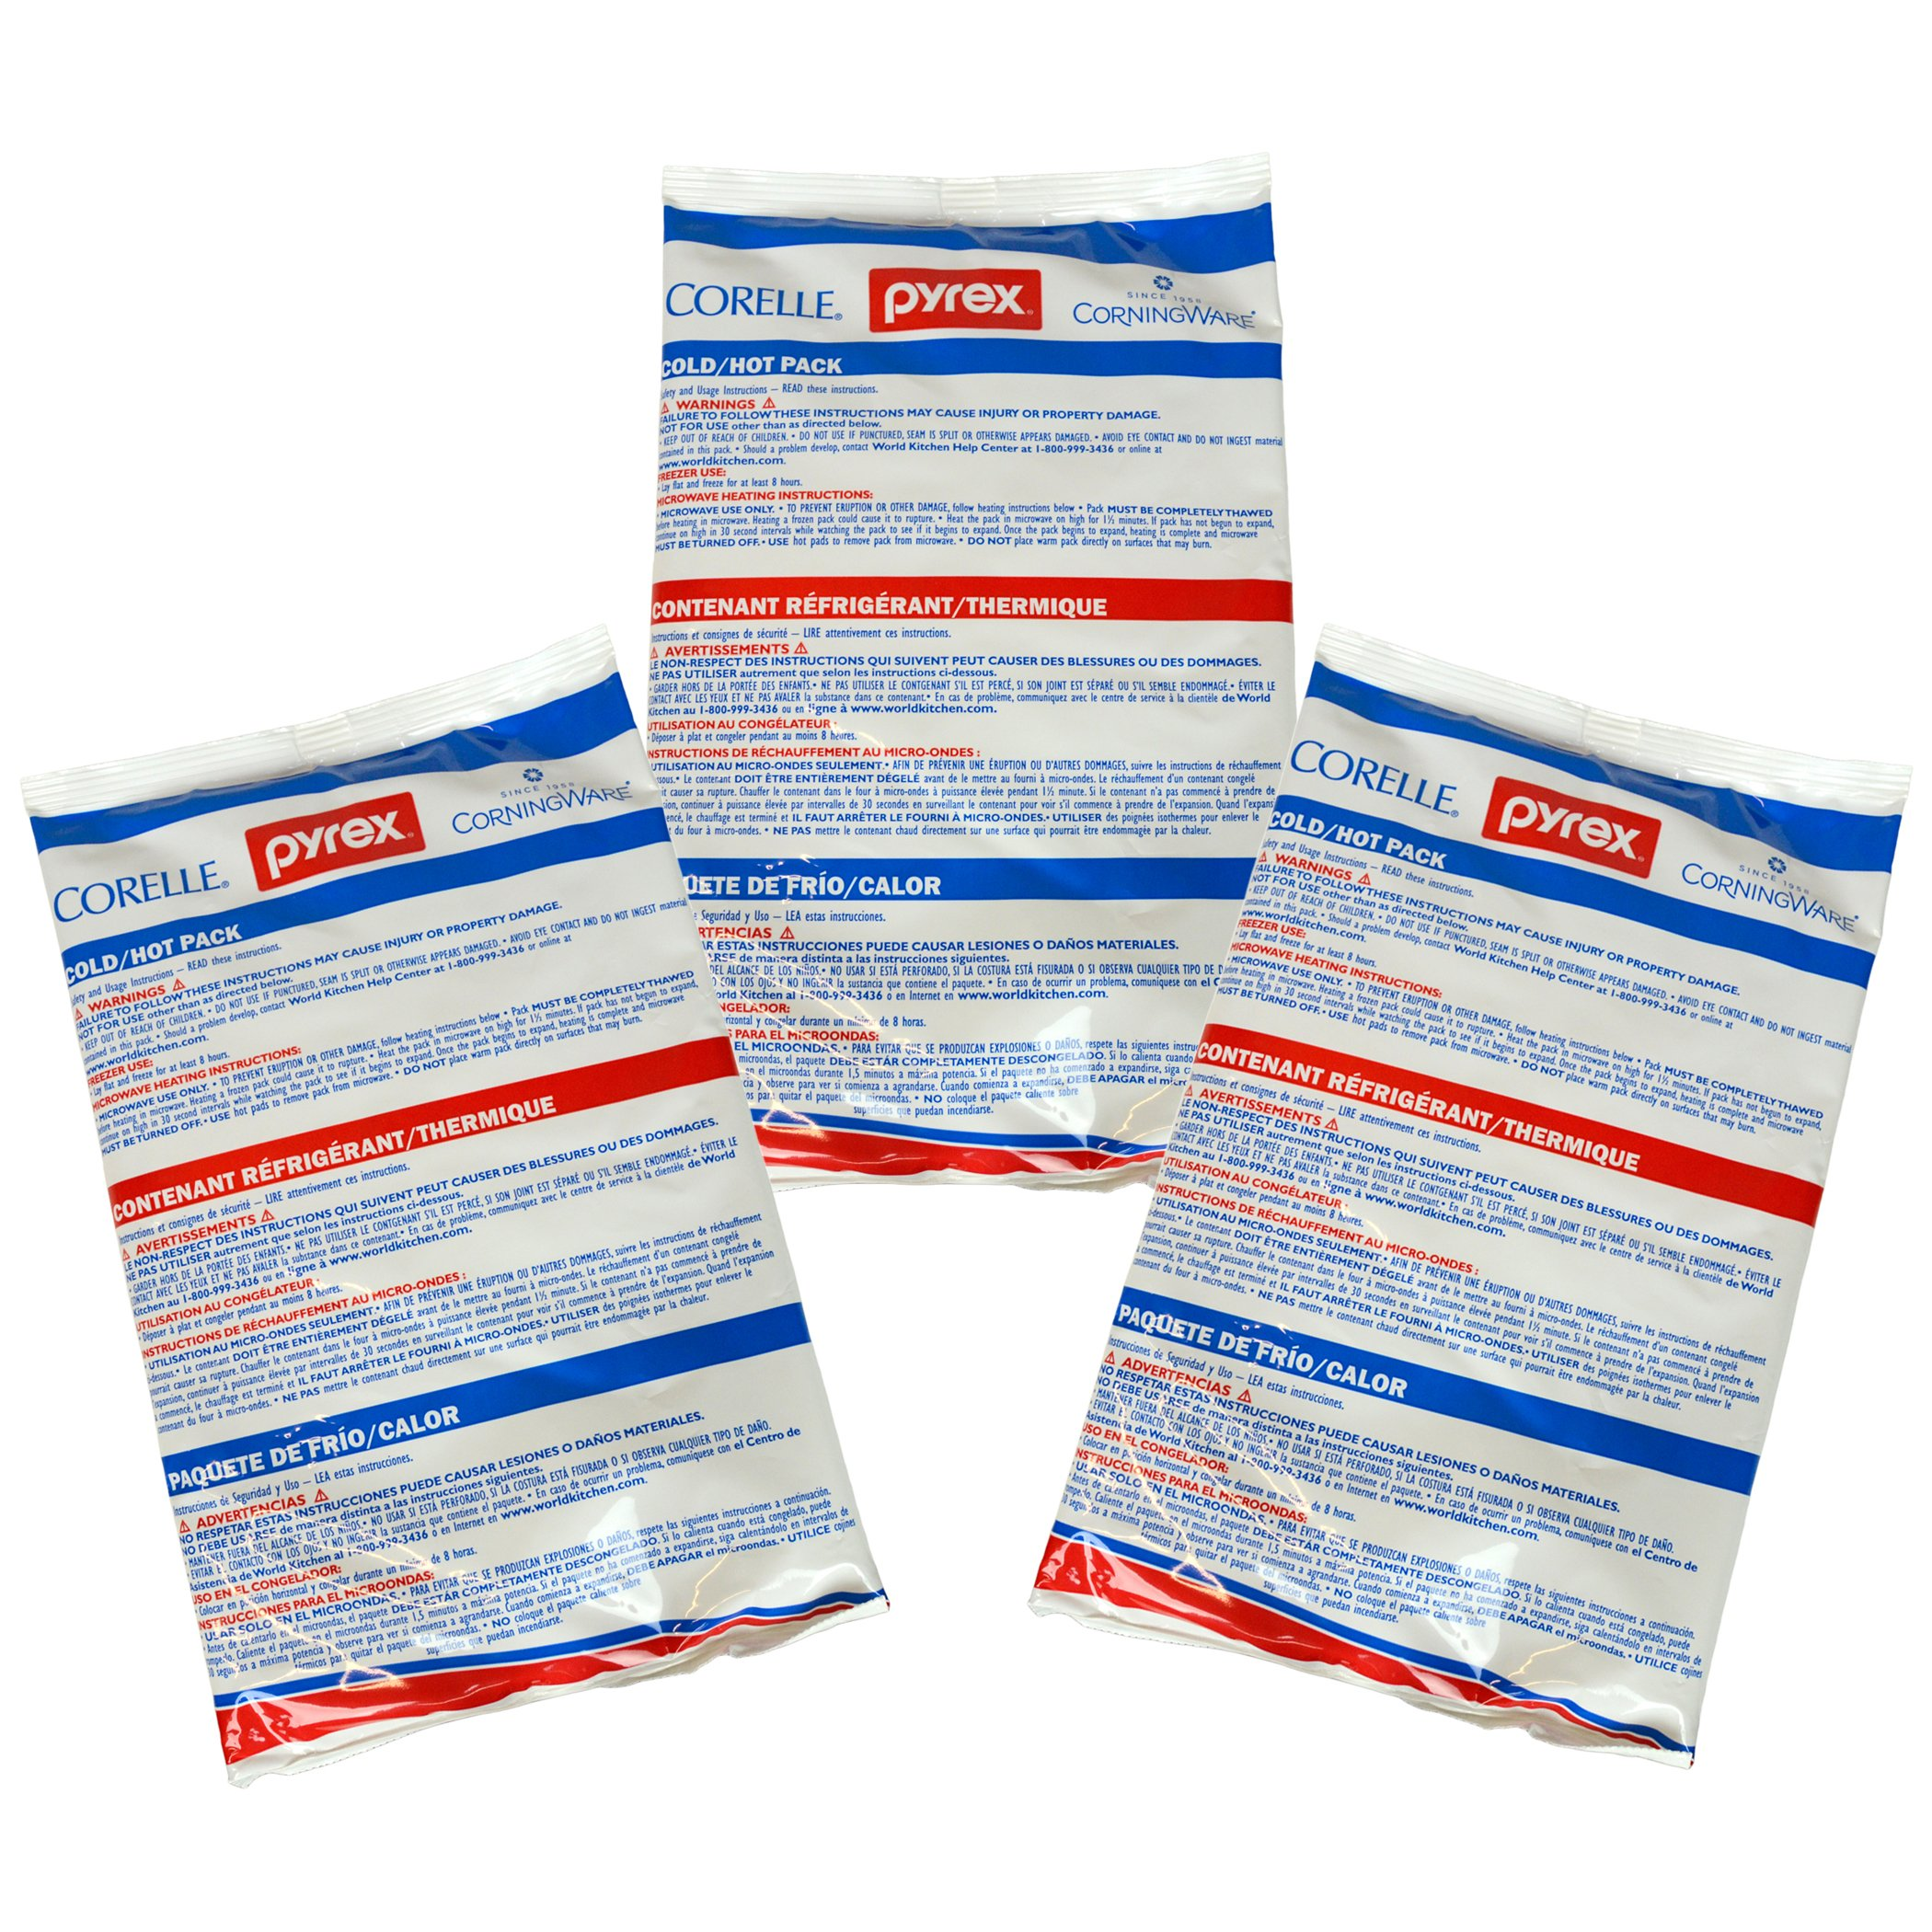 Pyrex Large Portable Ice Substitutes Gel Freeze Pack - 3 Pack